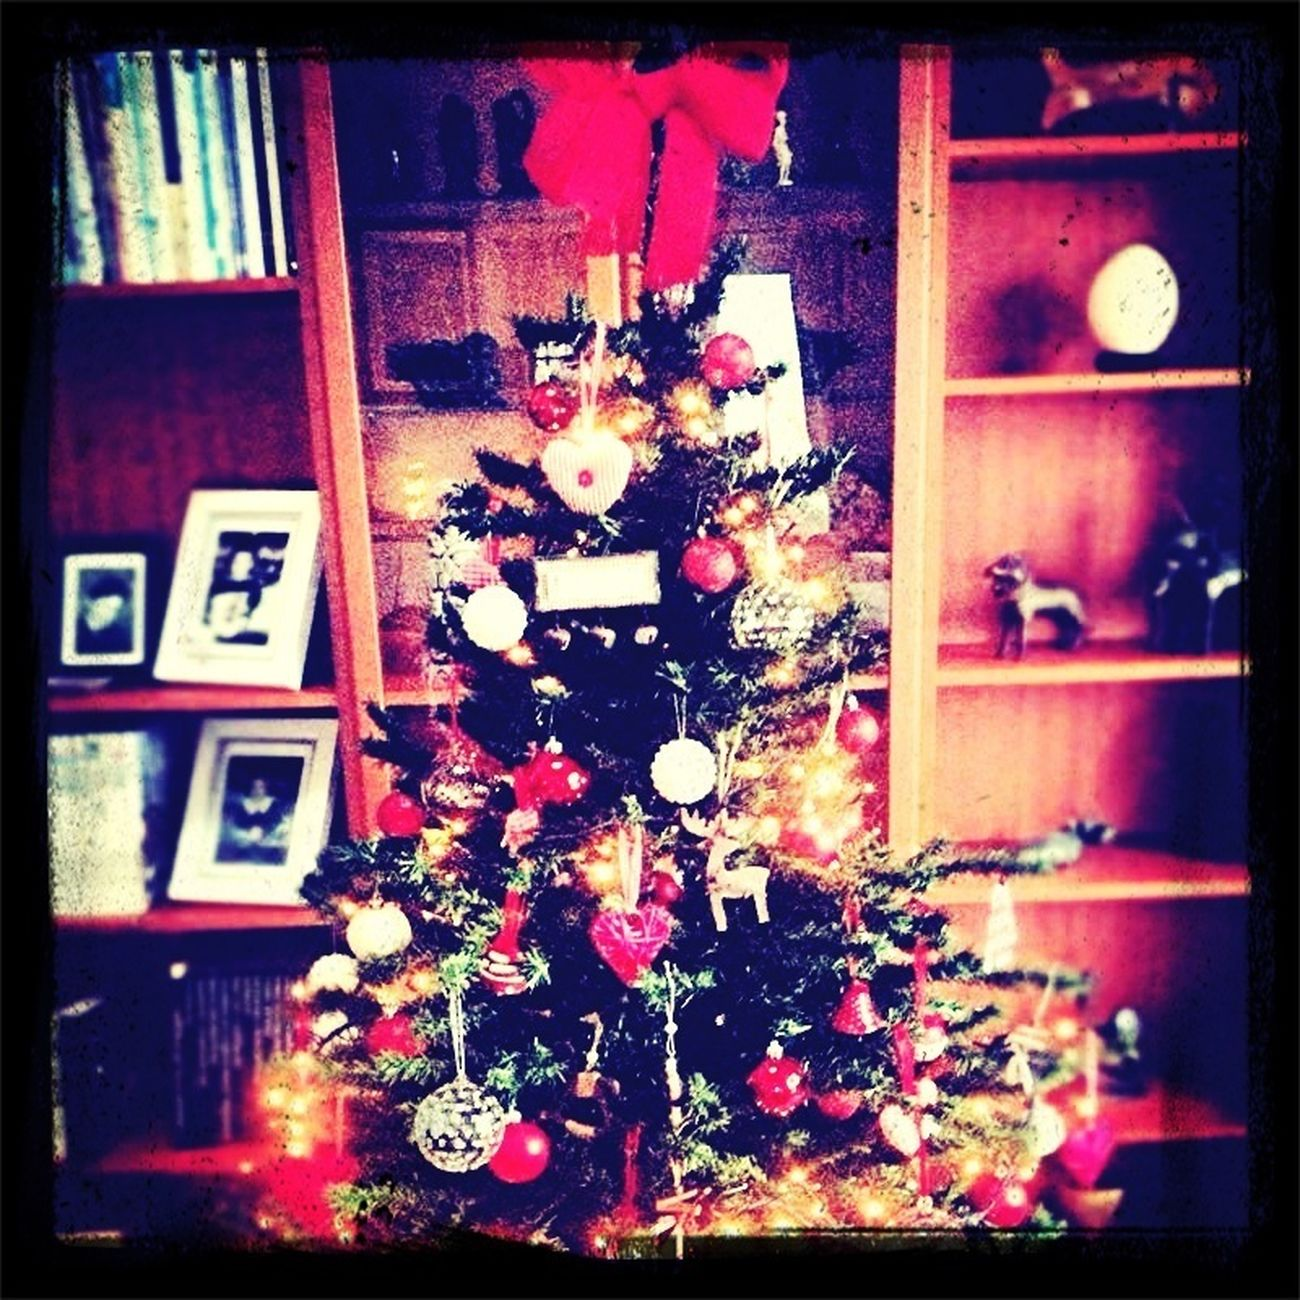 Poppy's Christmas Tree